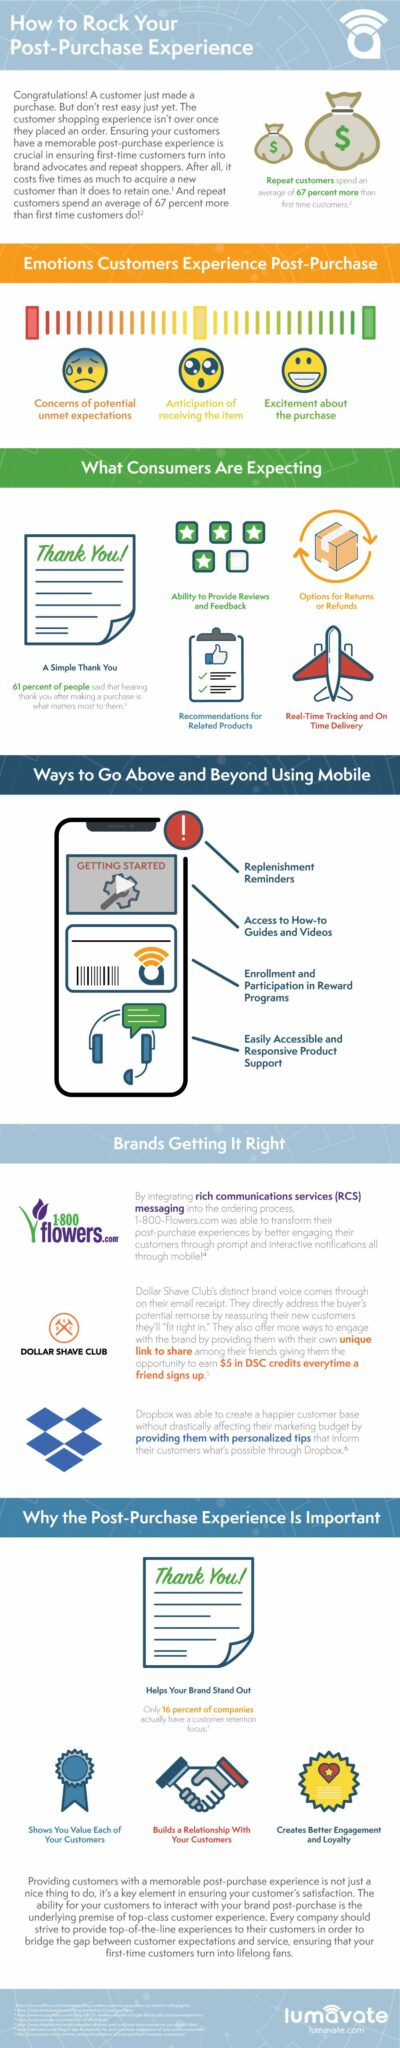 How to Rock Your Post-Purchase Experience Infographic